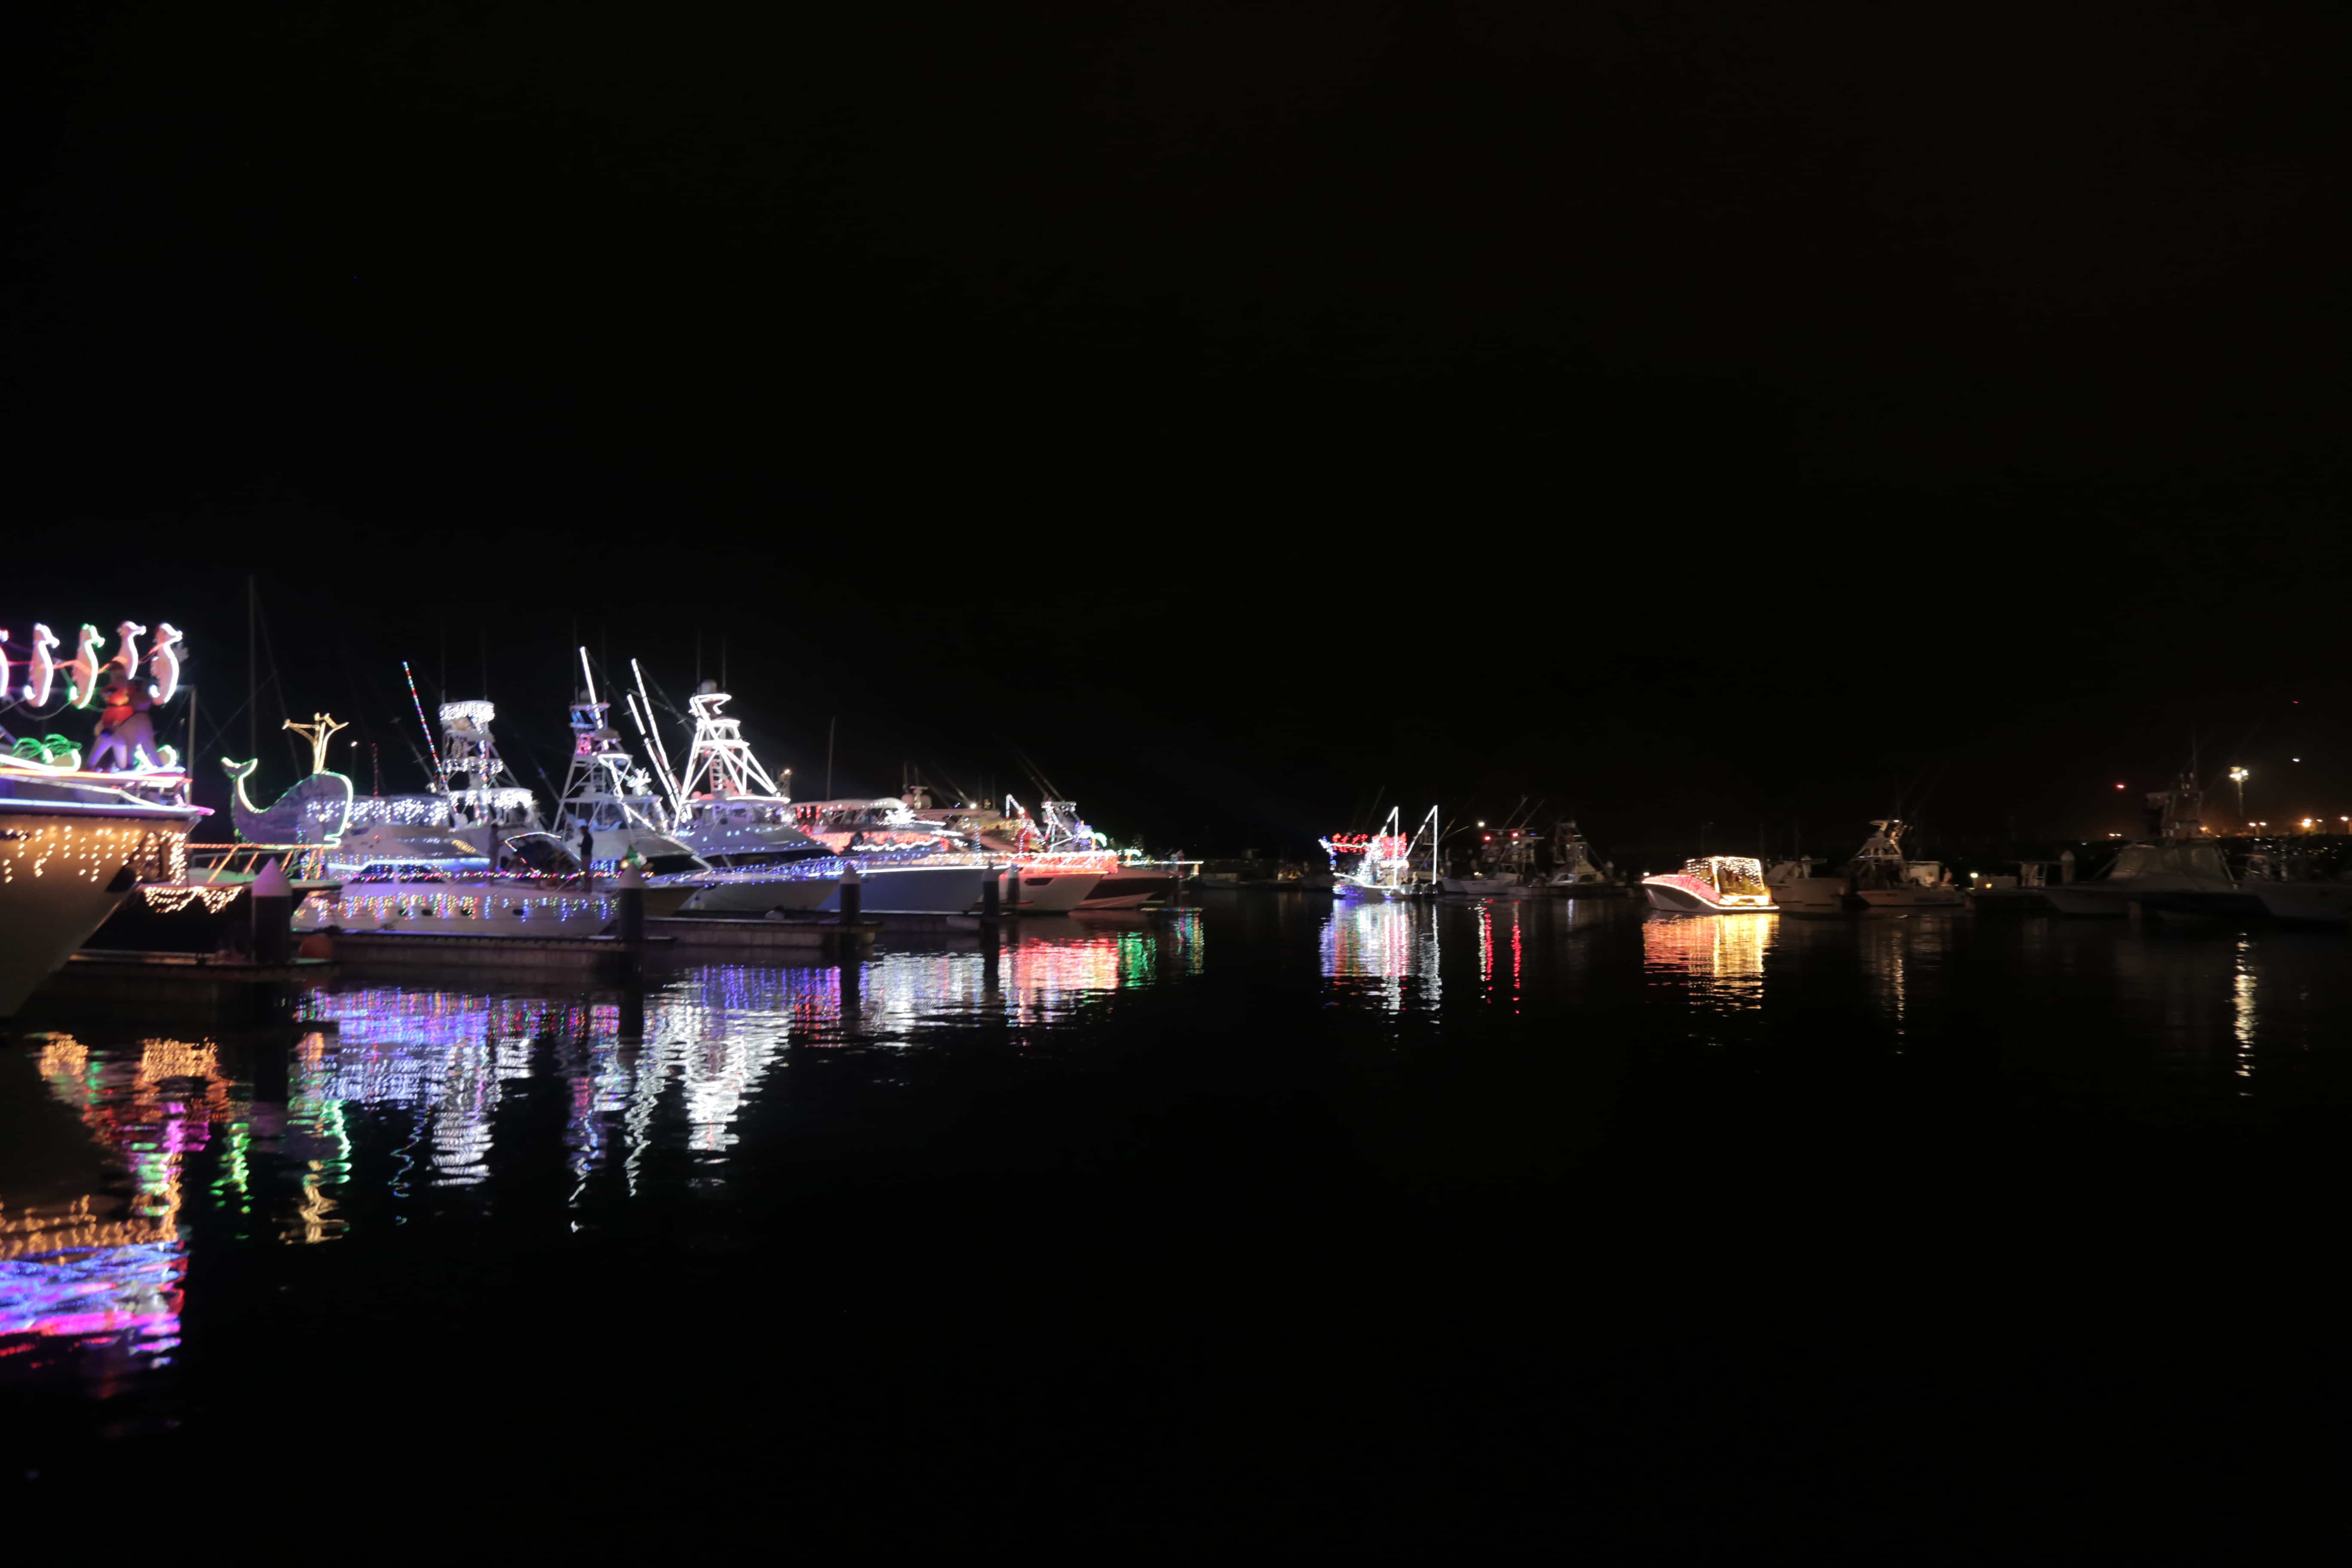 Bright Lights Boat Parade